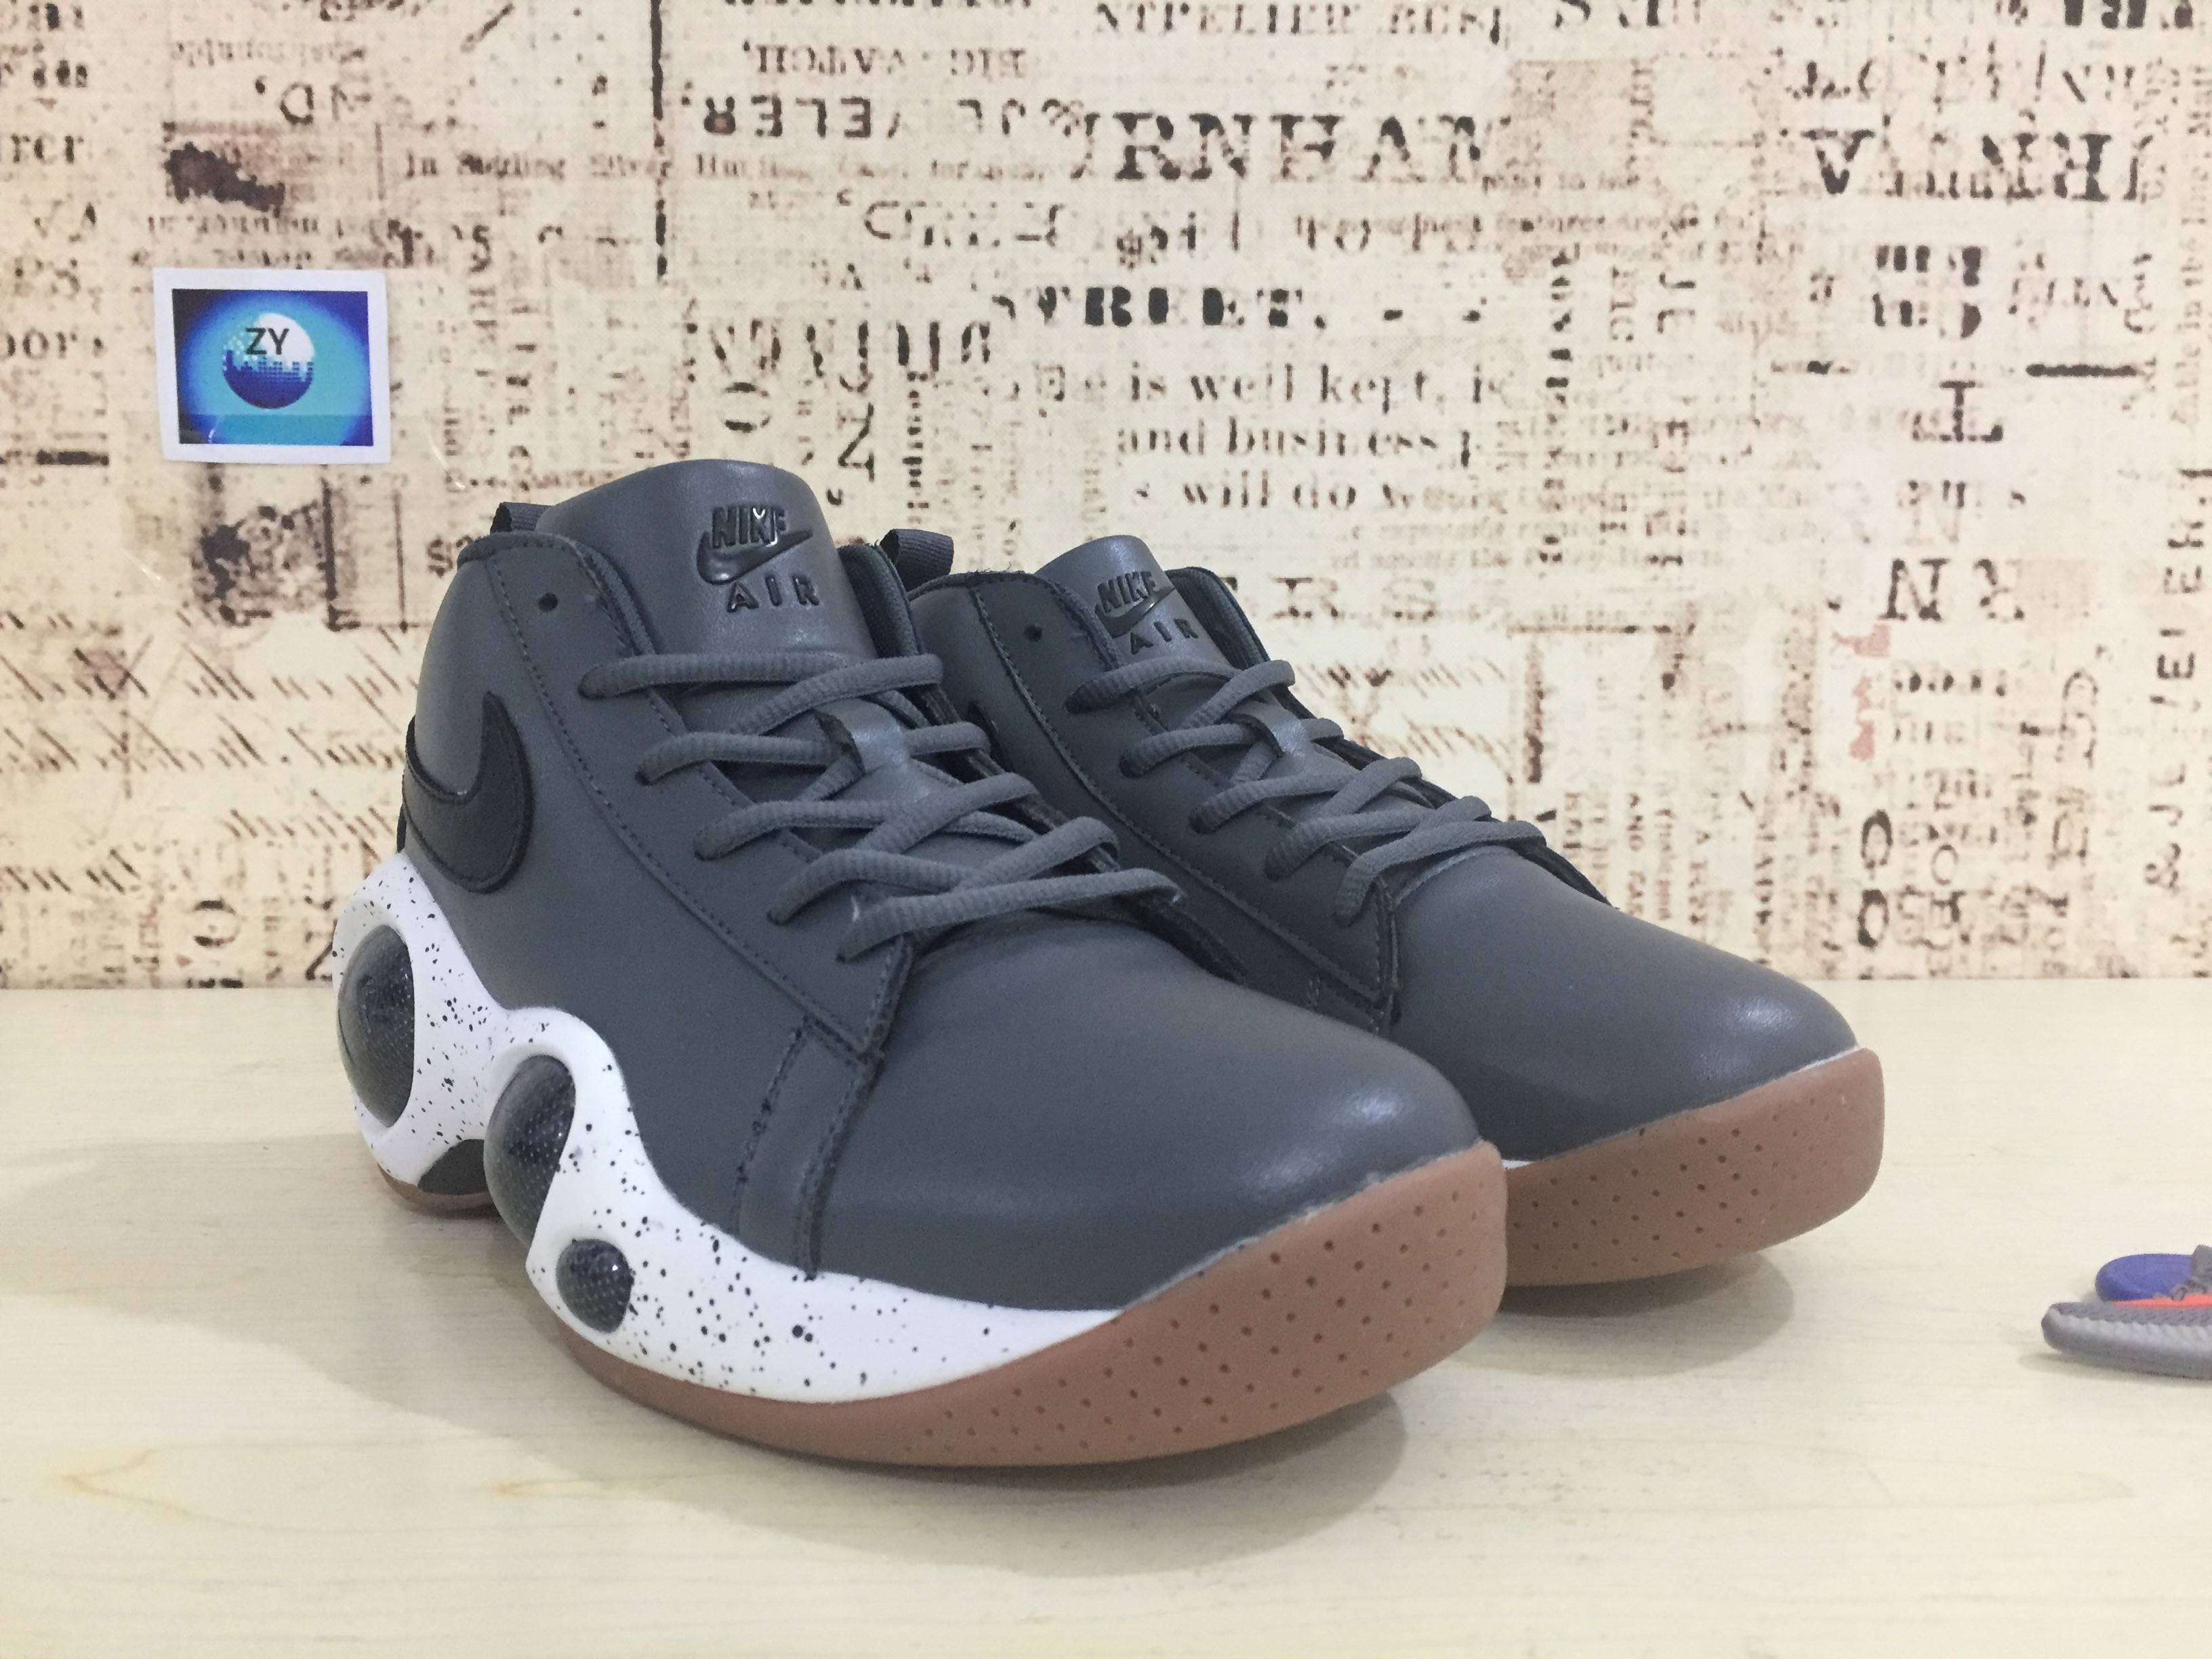 Nike Zoom Bonafide Grey Black Shoes